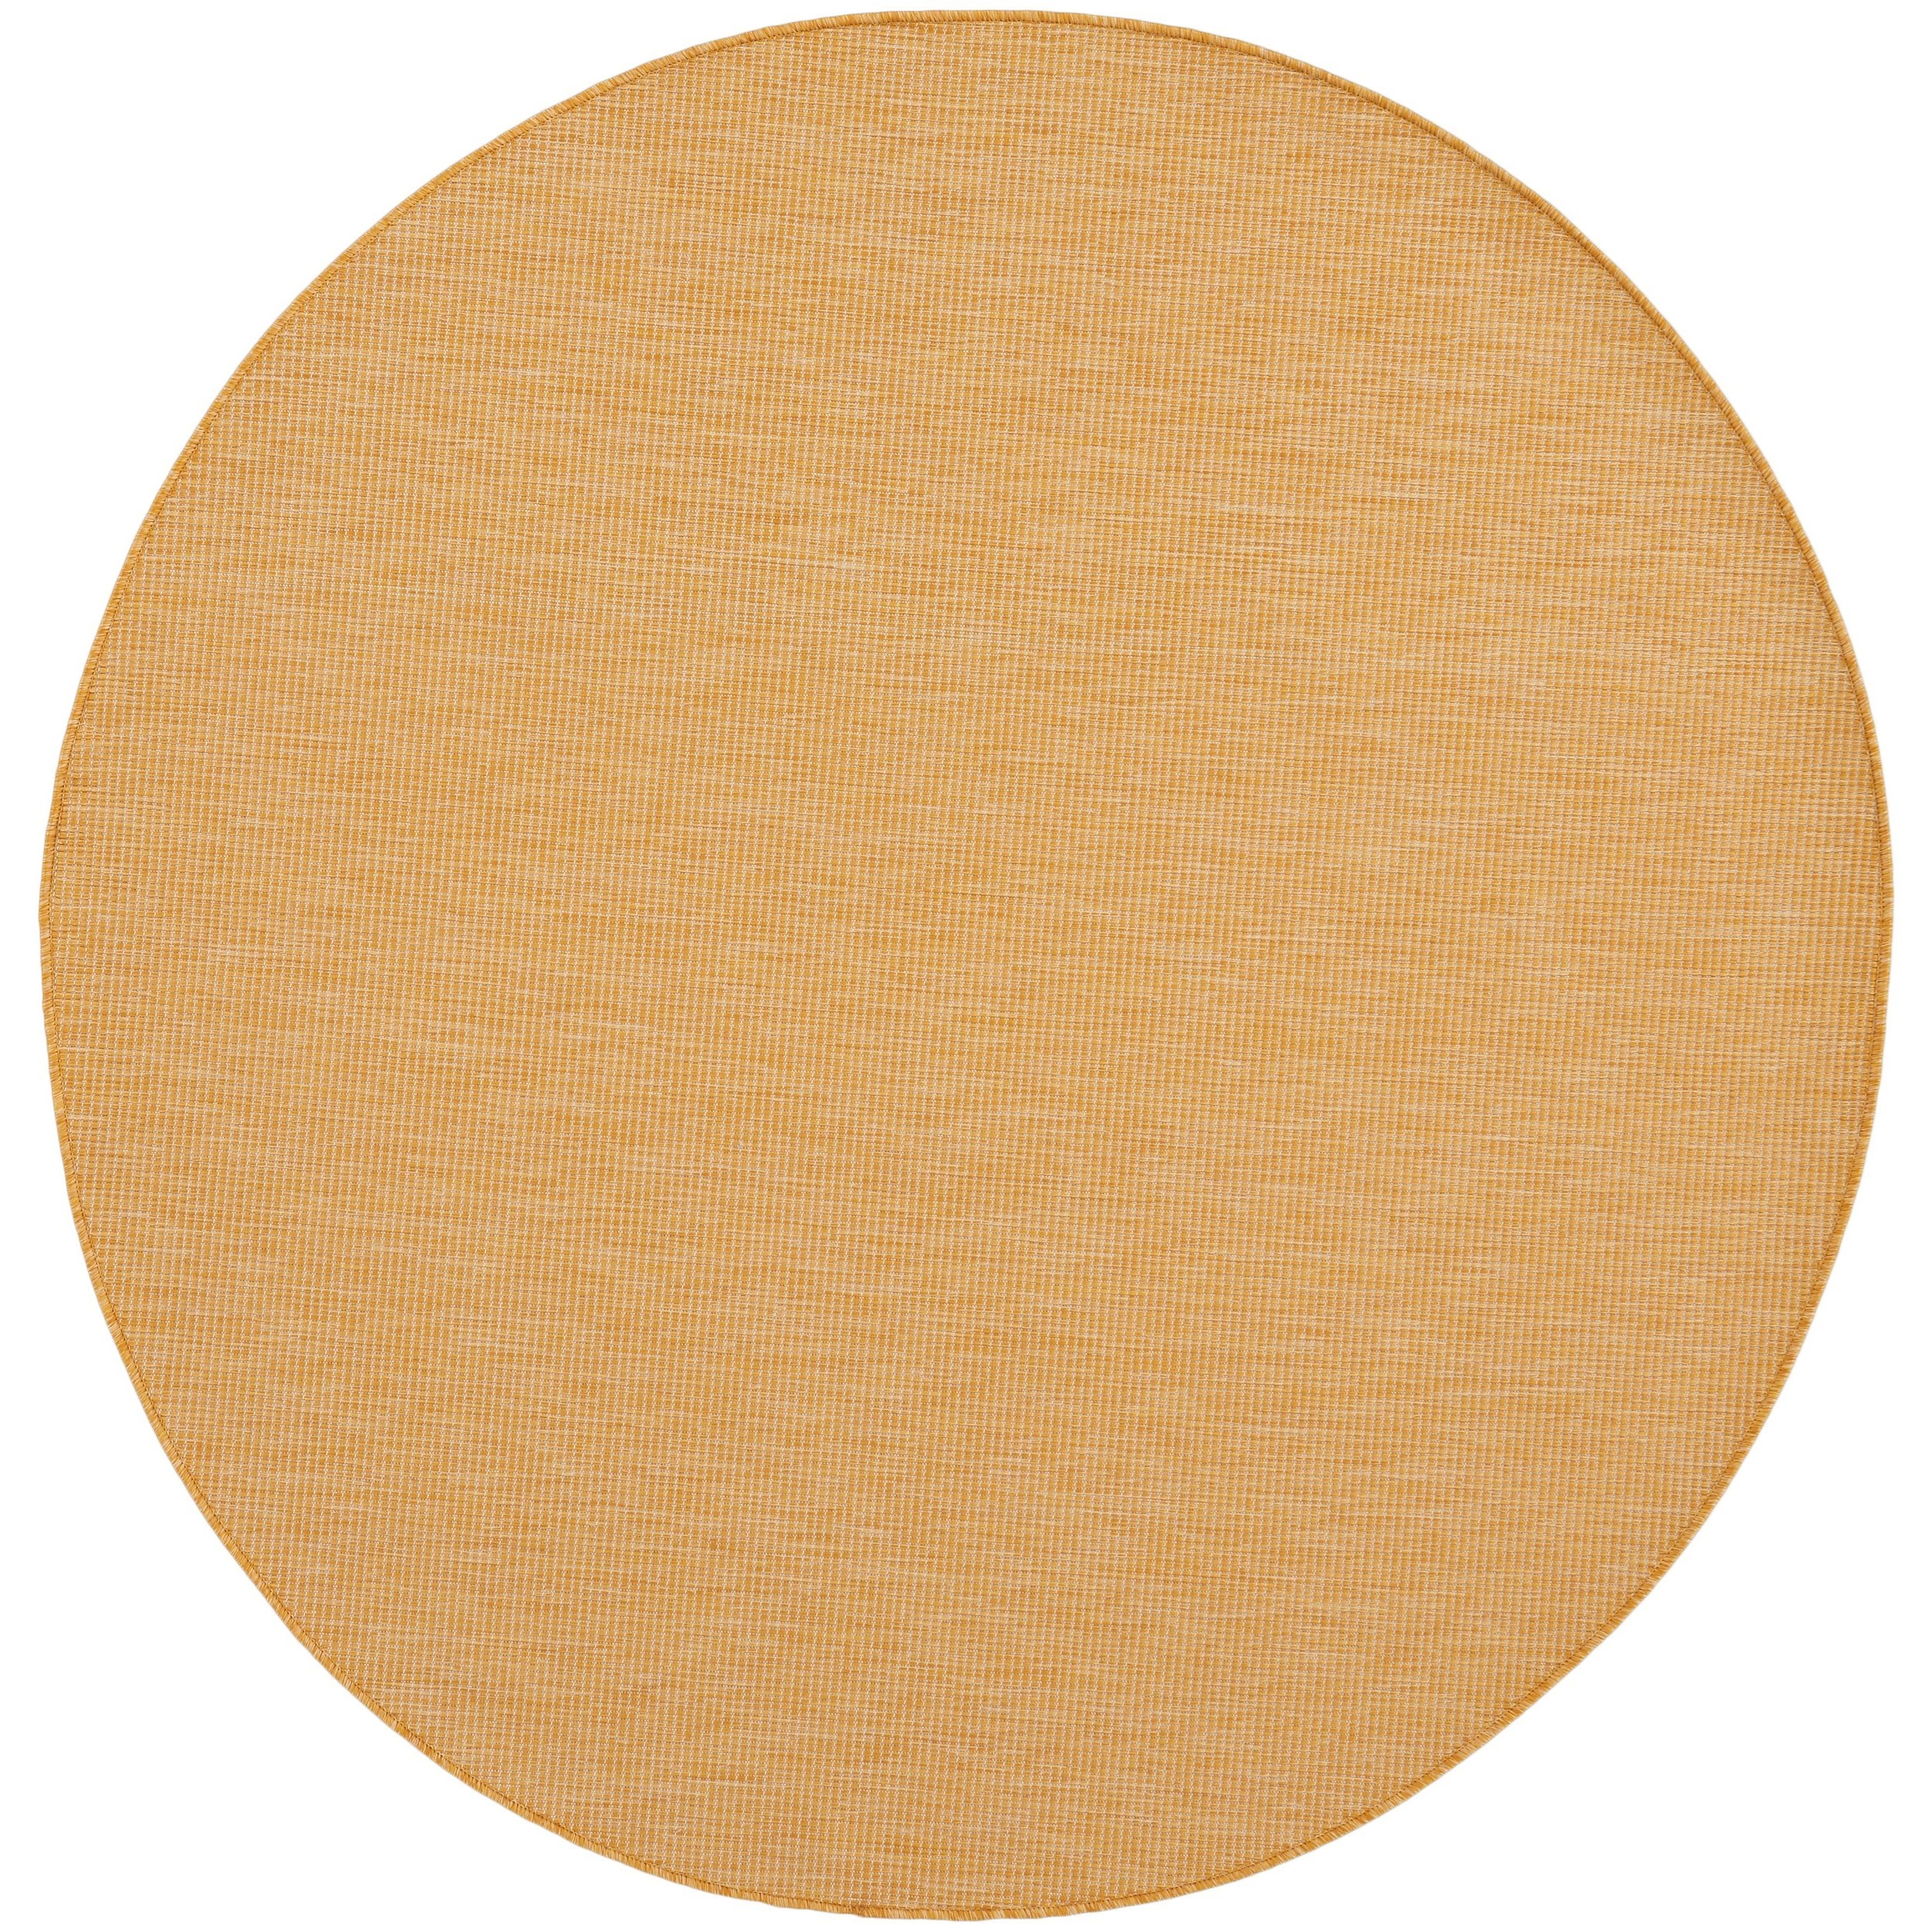 Positano 2020 6' Round Rug by Nourison at Home Collections Furniture